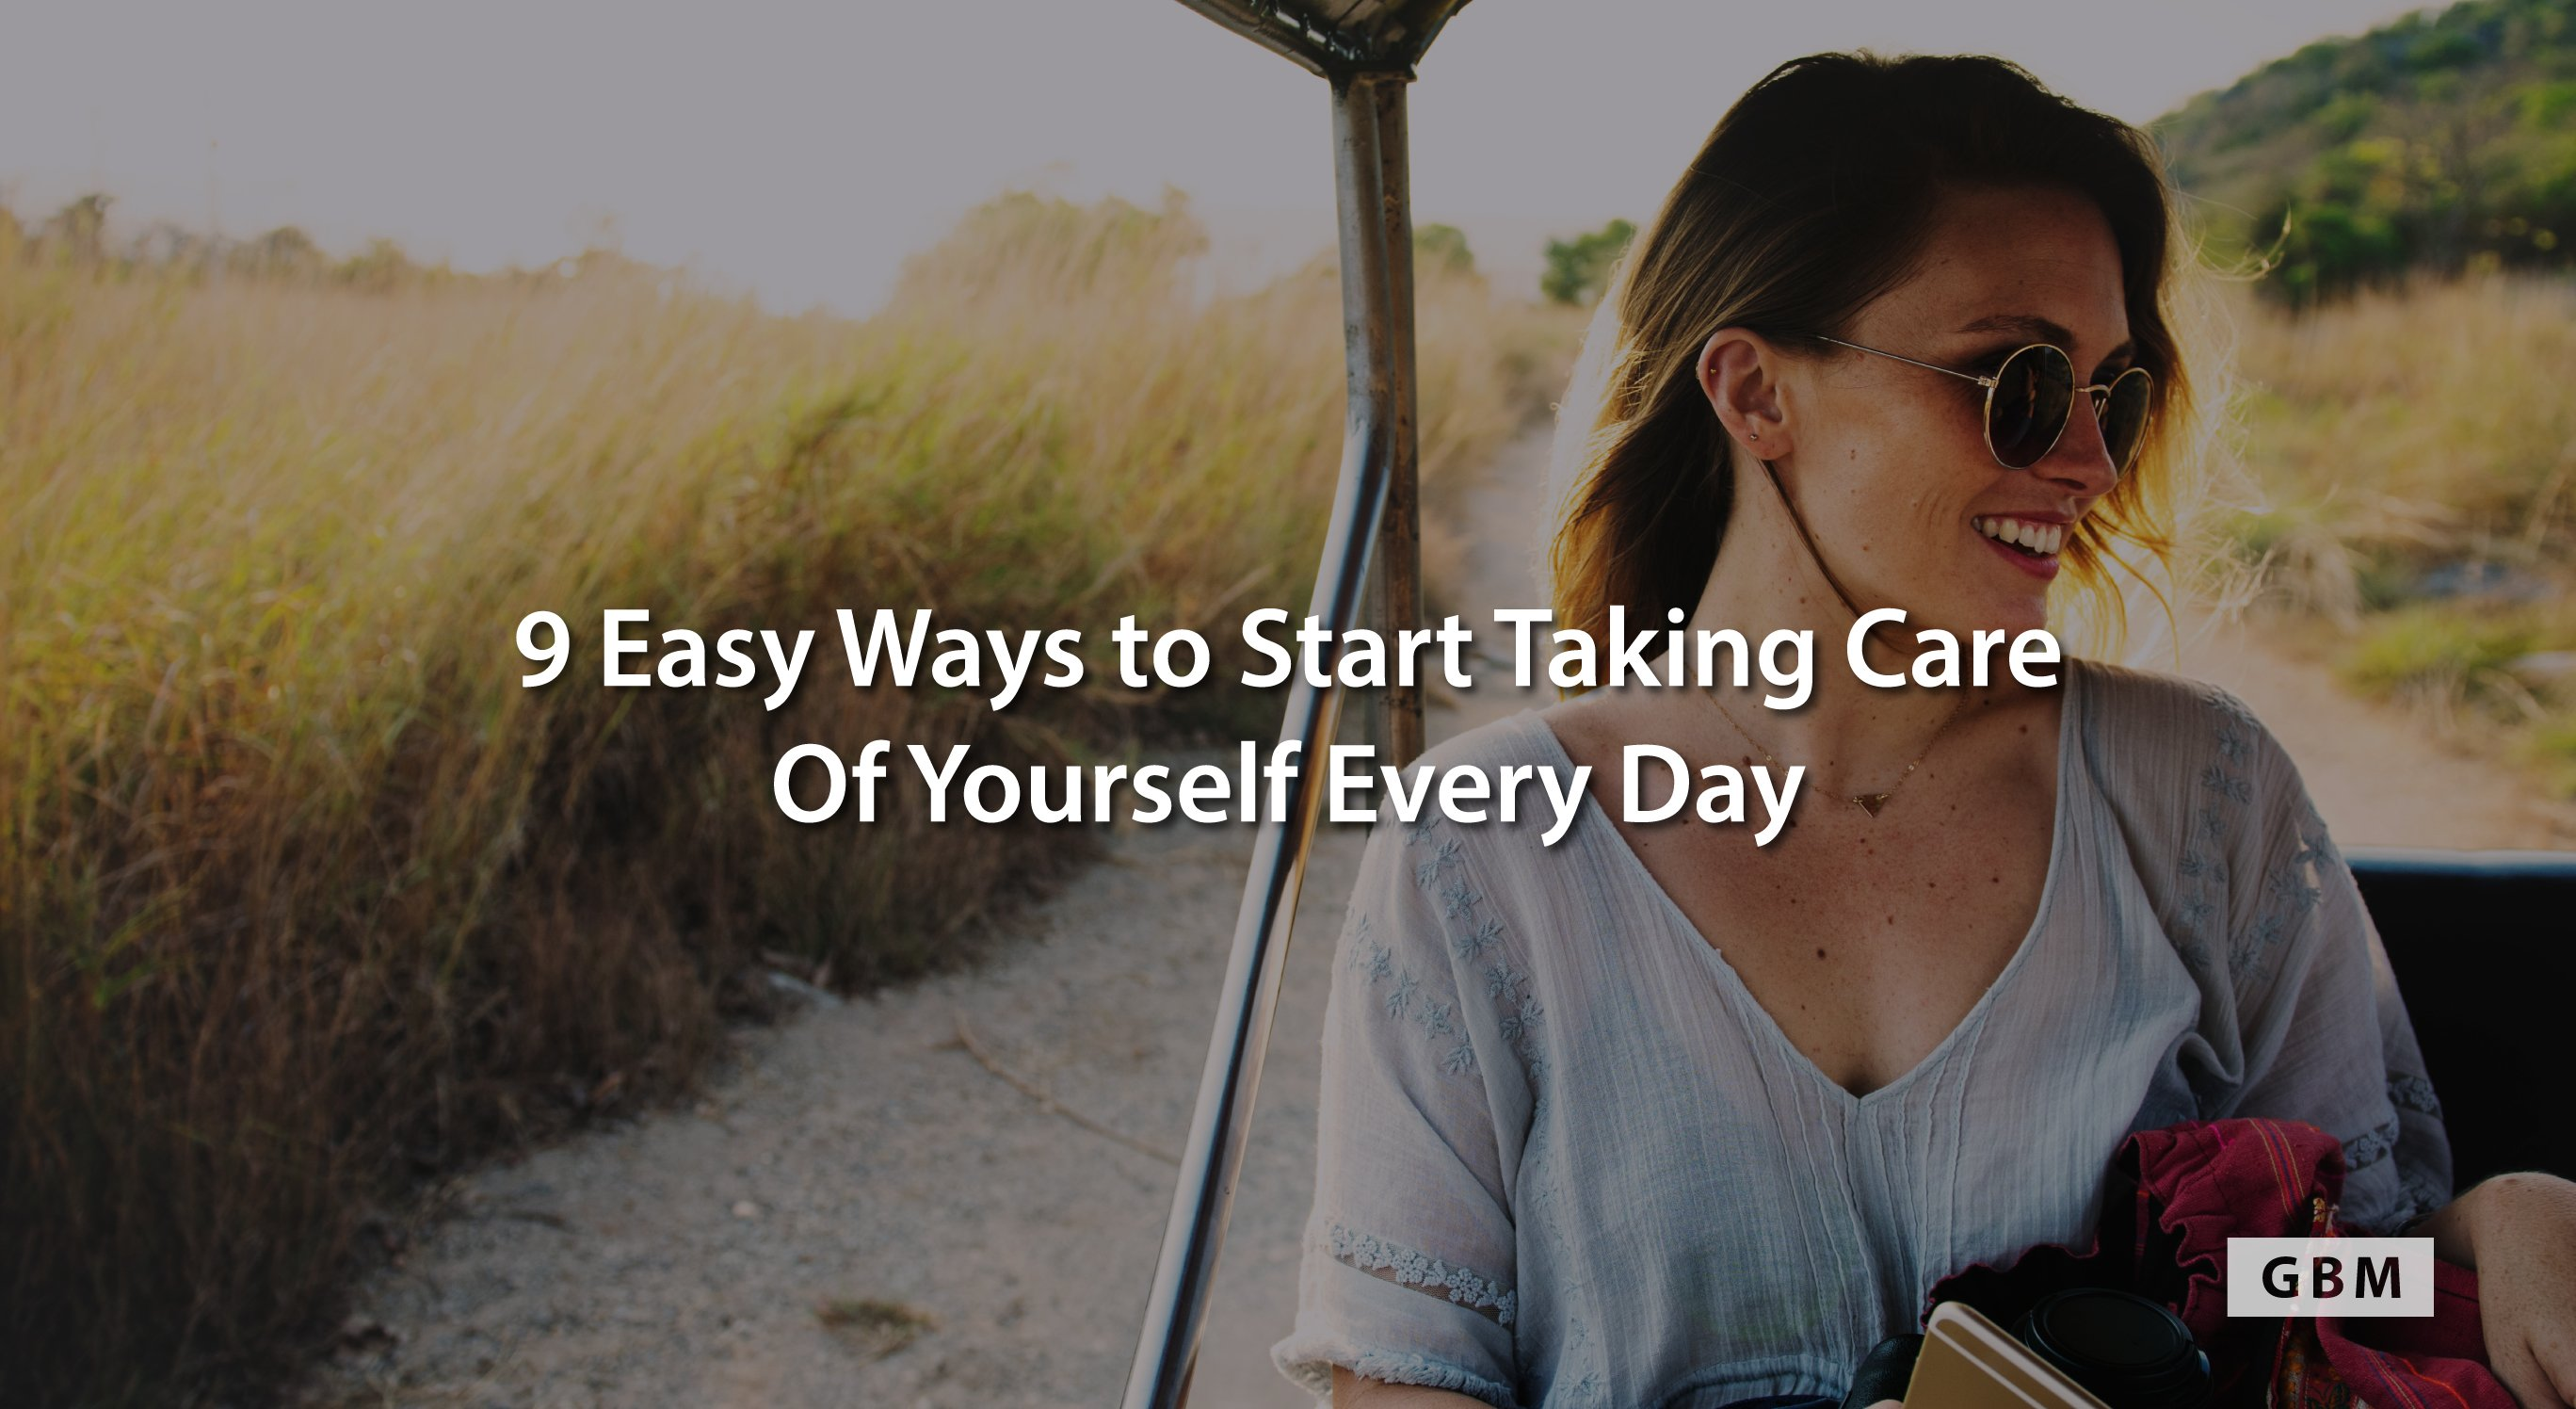 9 easy ways start taking care every day